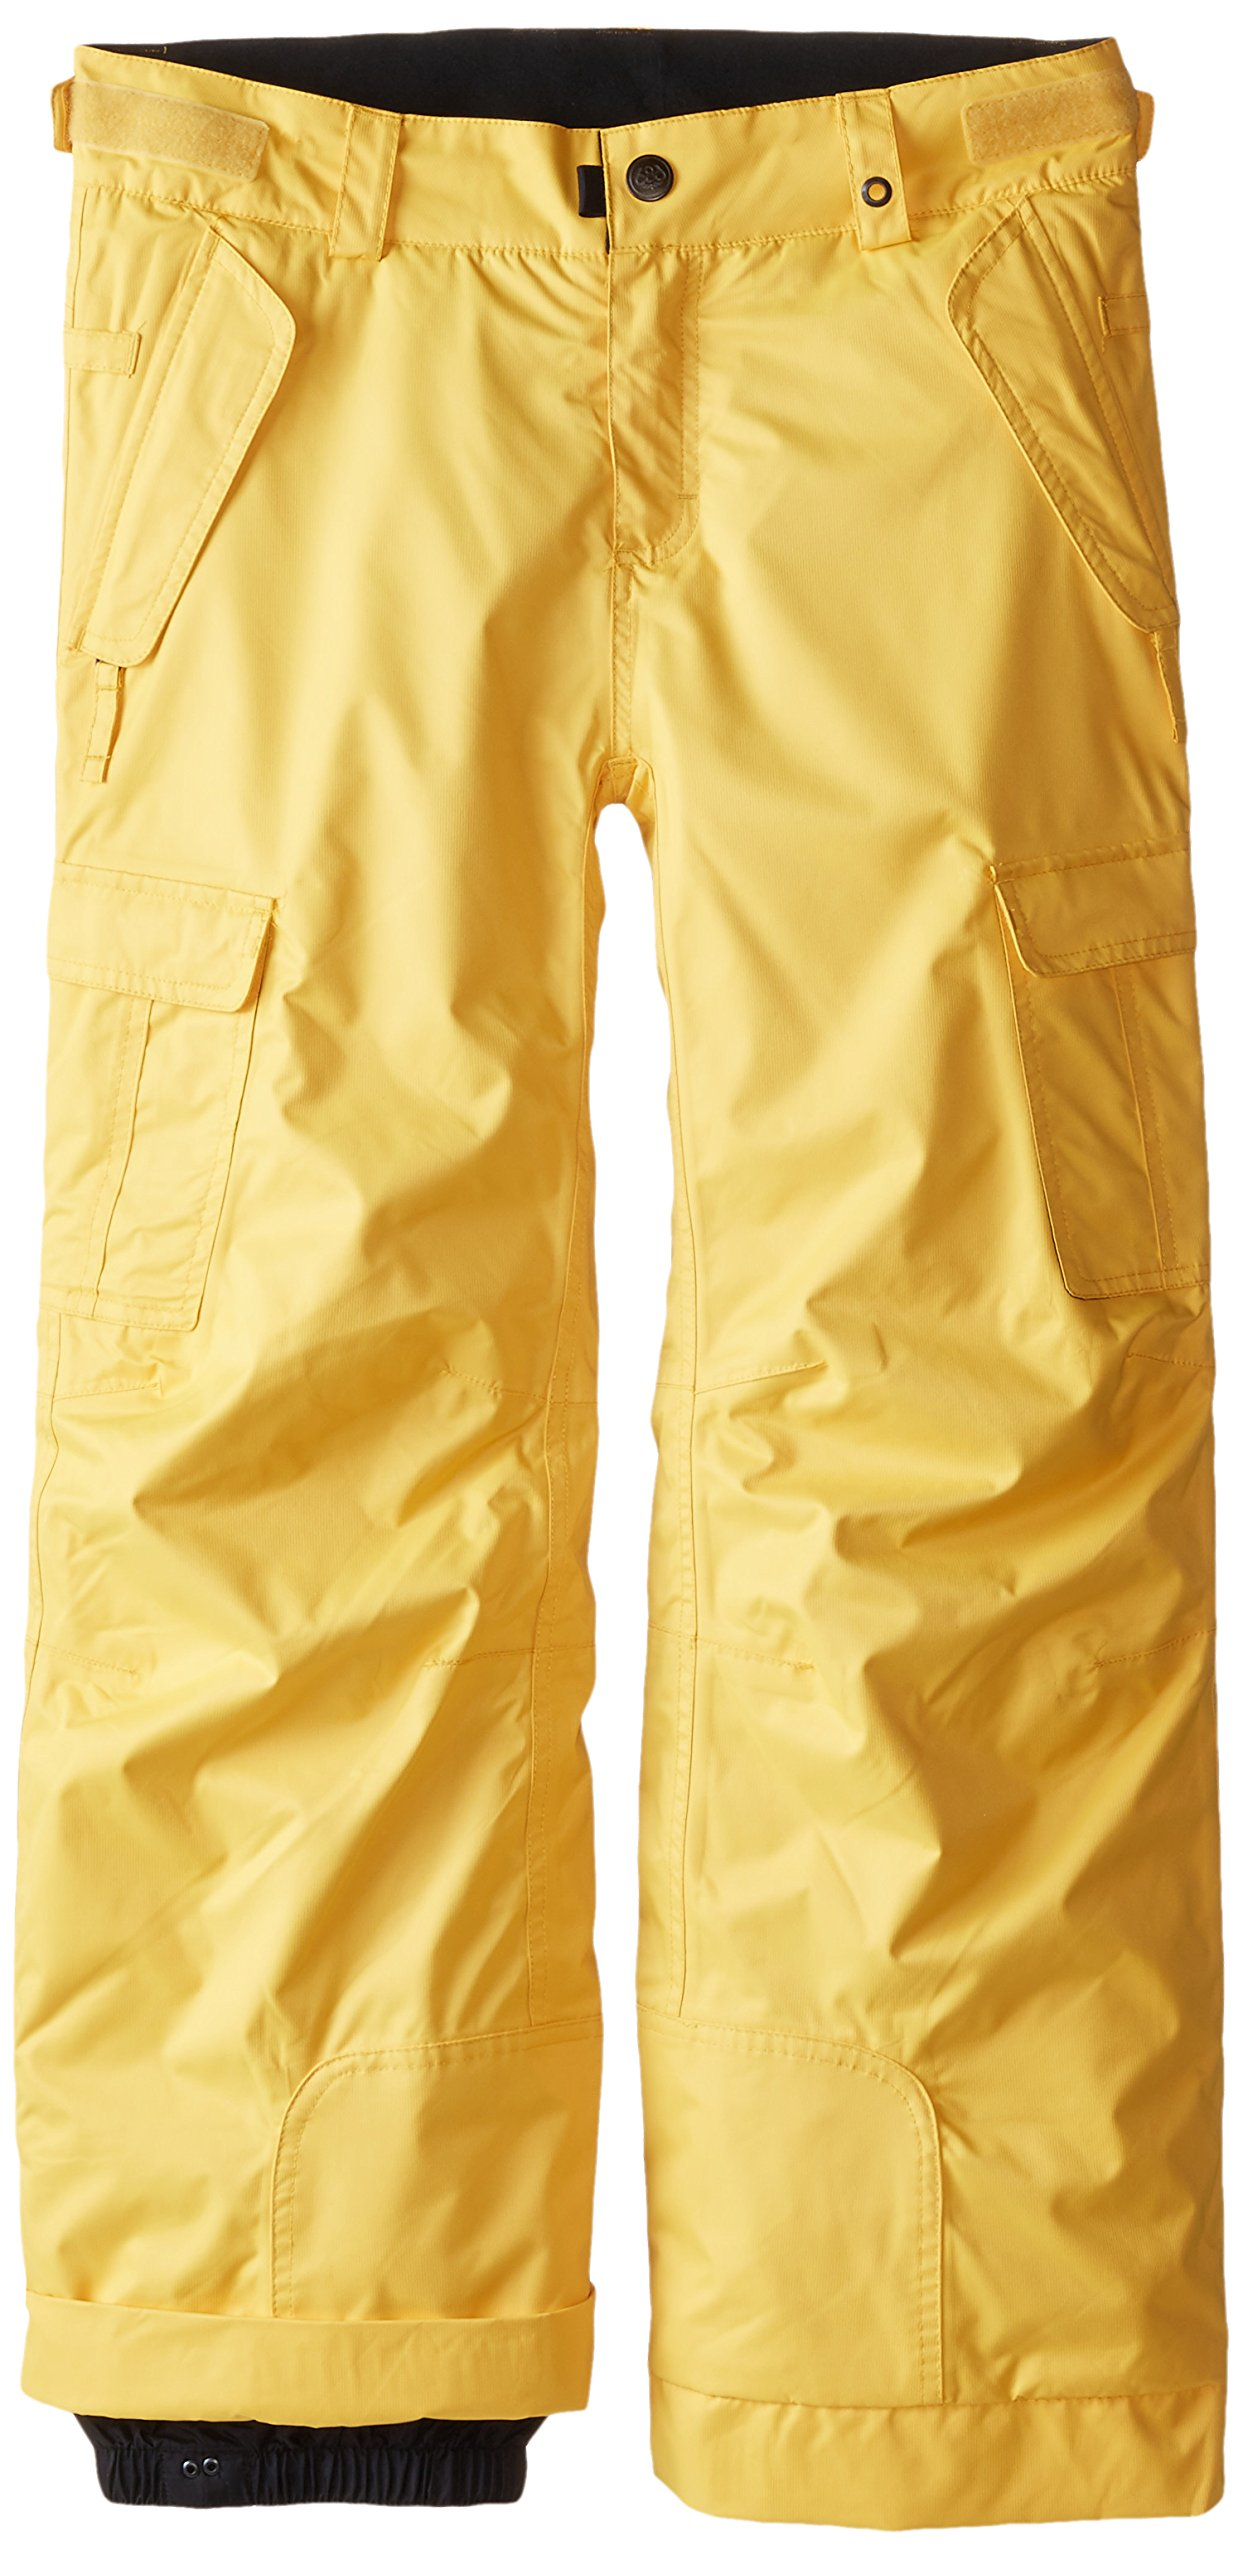 686 Boy's All Terrain Insulated Pant, X-Small, Yellow